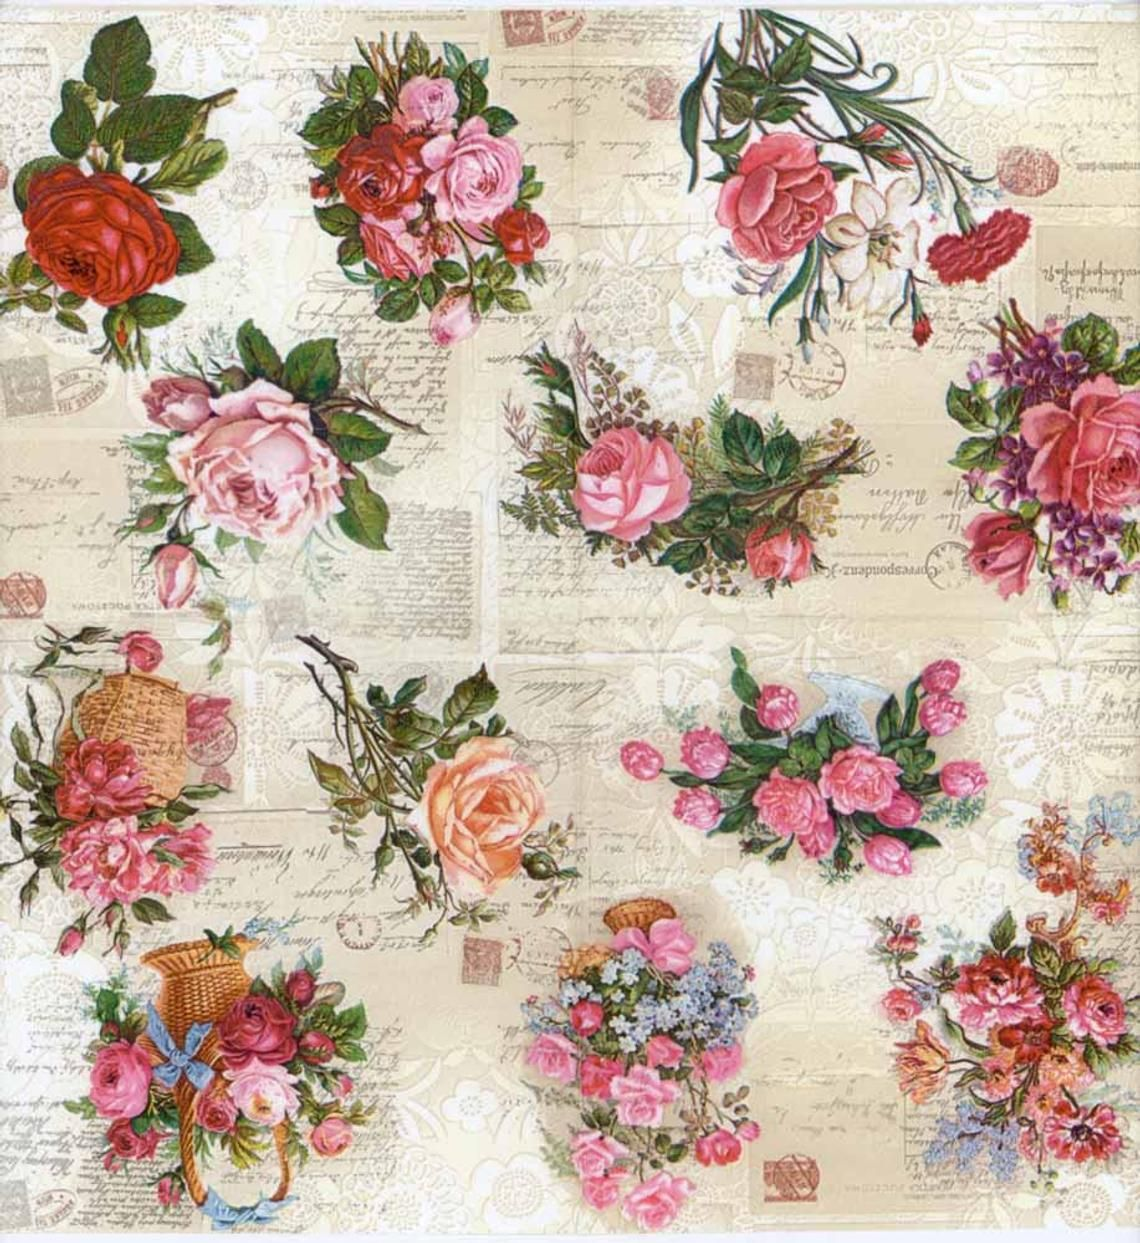 Decoupage Paper Napkins Baskets Of Roses Floral Napkins Rose Napkins Party Napkins Paper Napkins For Decoupage Paper Napkins For Decoupage Decoupage Paper Decoupage Paper Printable